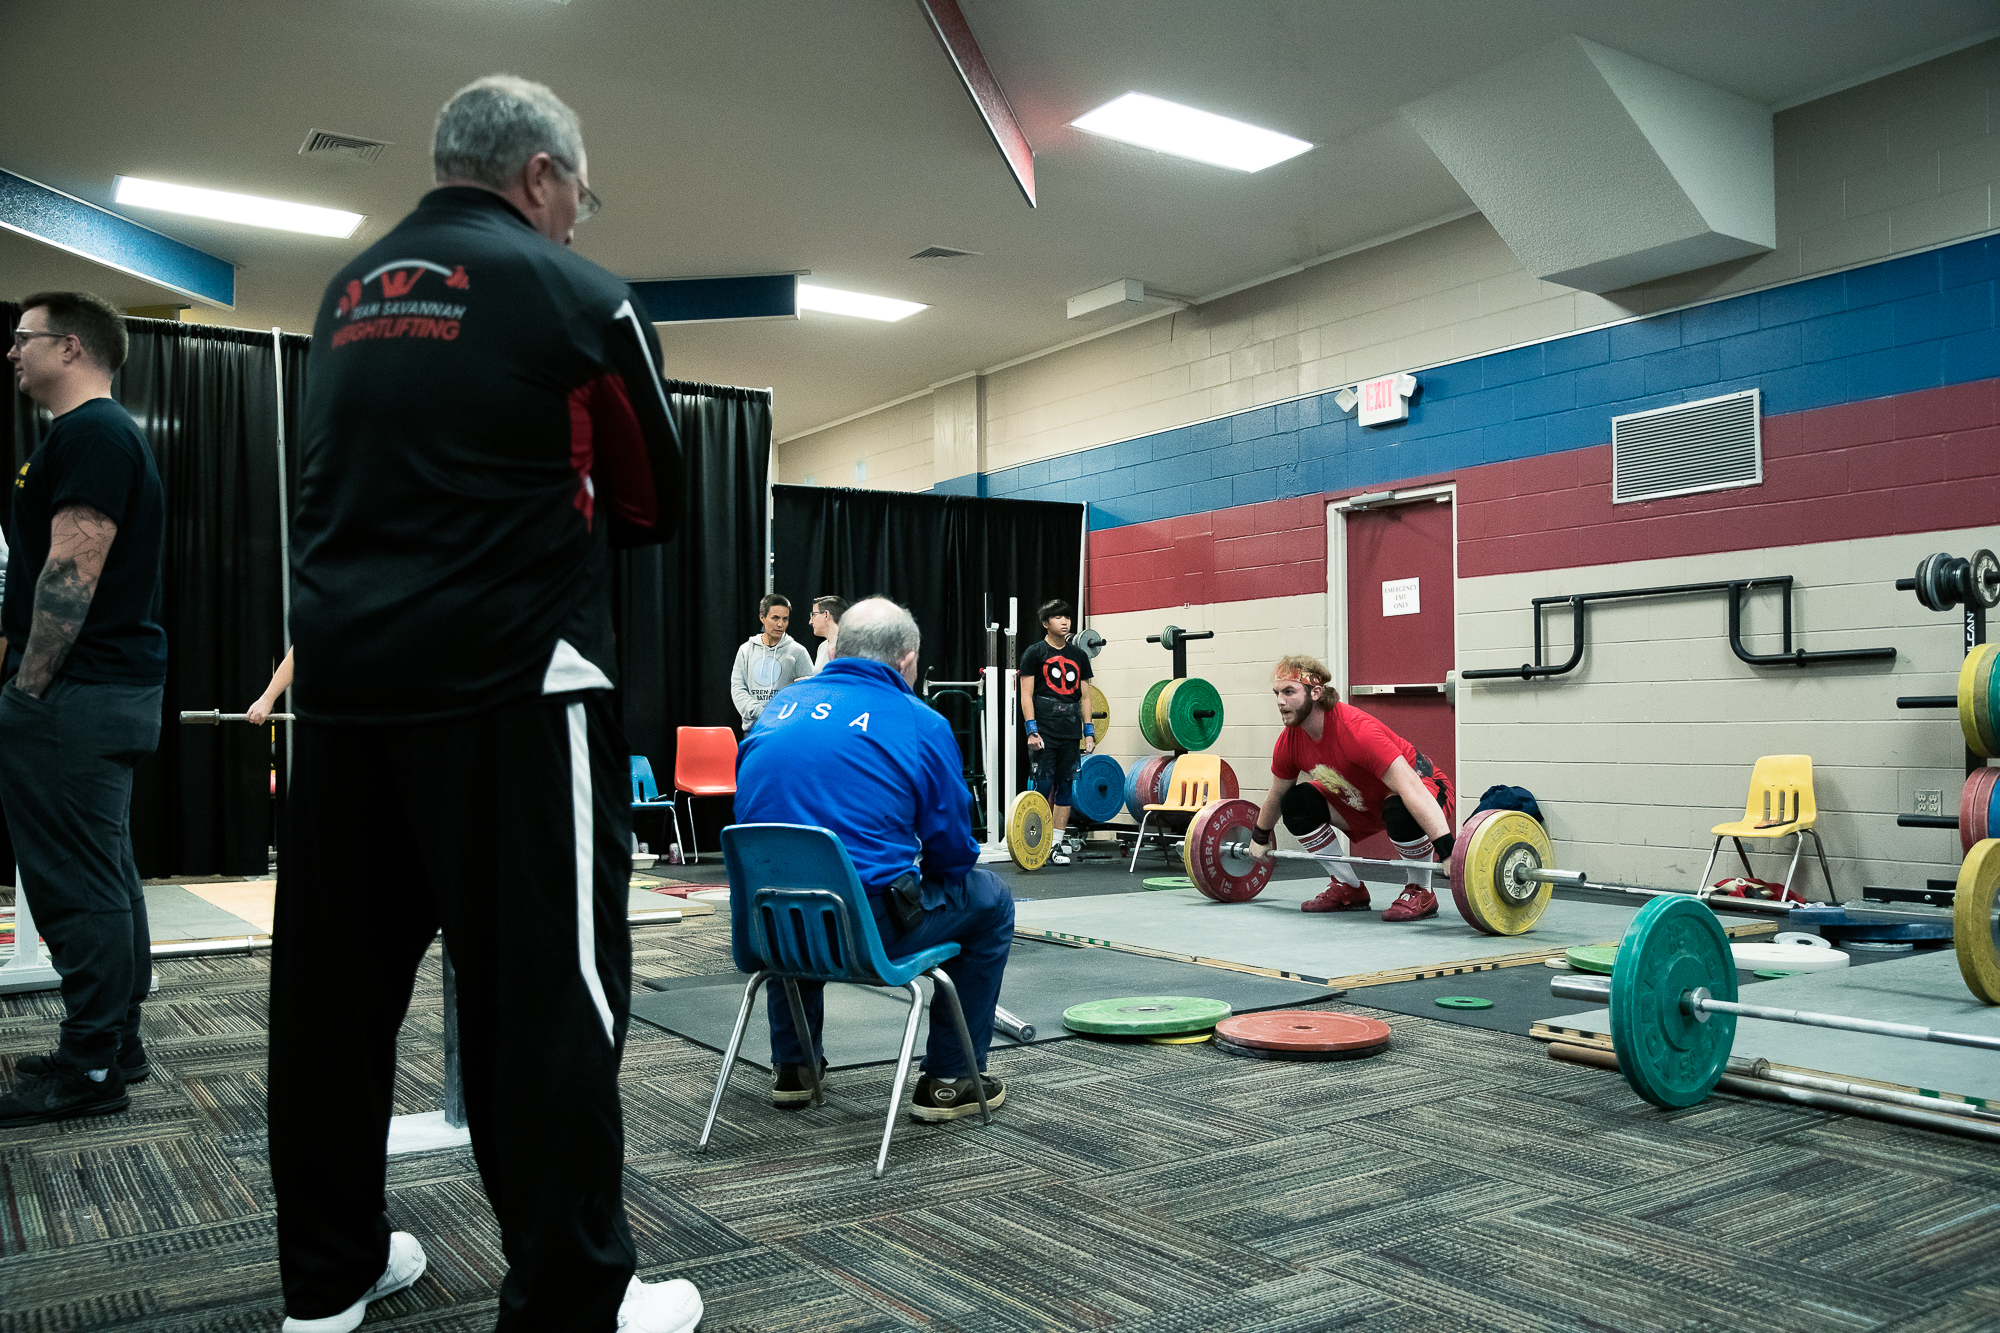 2017-american-masters-weightlifters-savannah-georgia-3.jpg